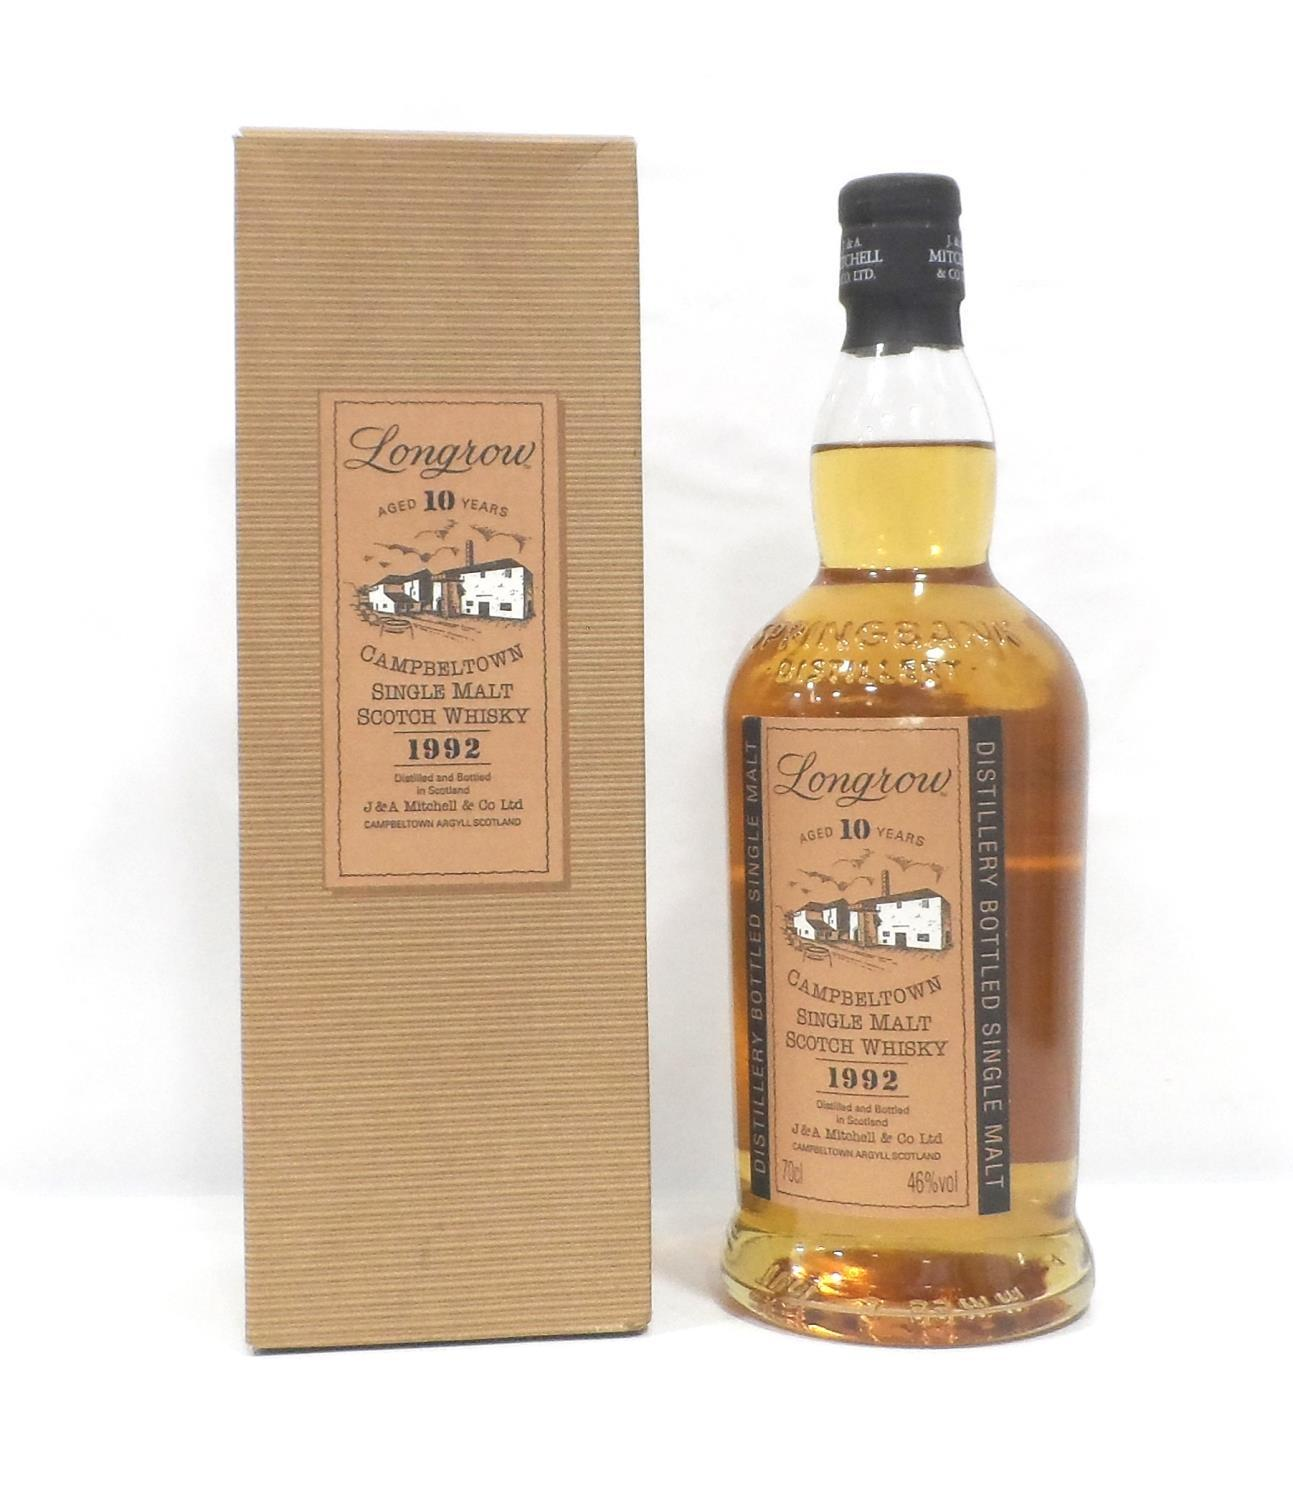 Lot 18 - LONGROW 10Y0 - 1992 Longrow was first produced at Springbank Distillery in 1973 as an experiment